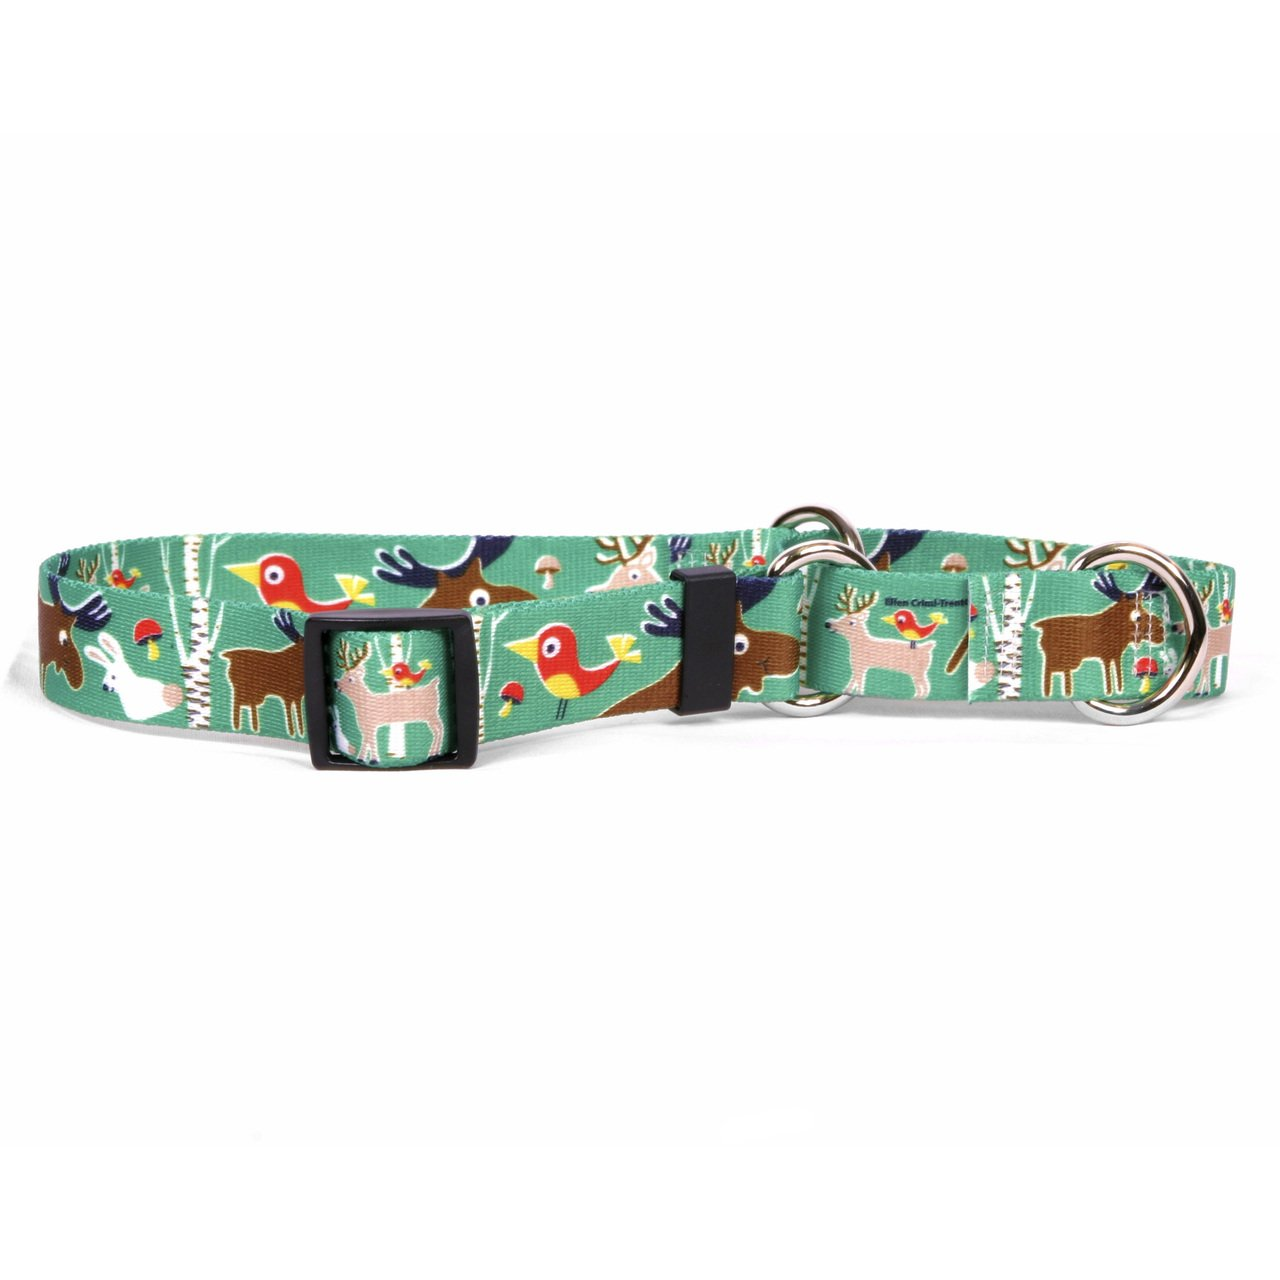 Yellow Dog Design Woodland Friends Martingale Dog Collar-Size Large-1'' Wide and fits Neck 18 to 26'' by Yellow Dog Design